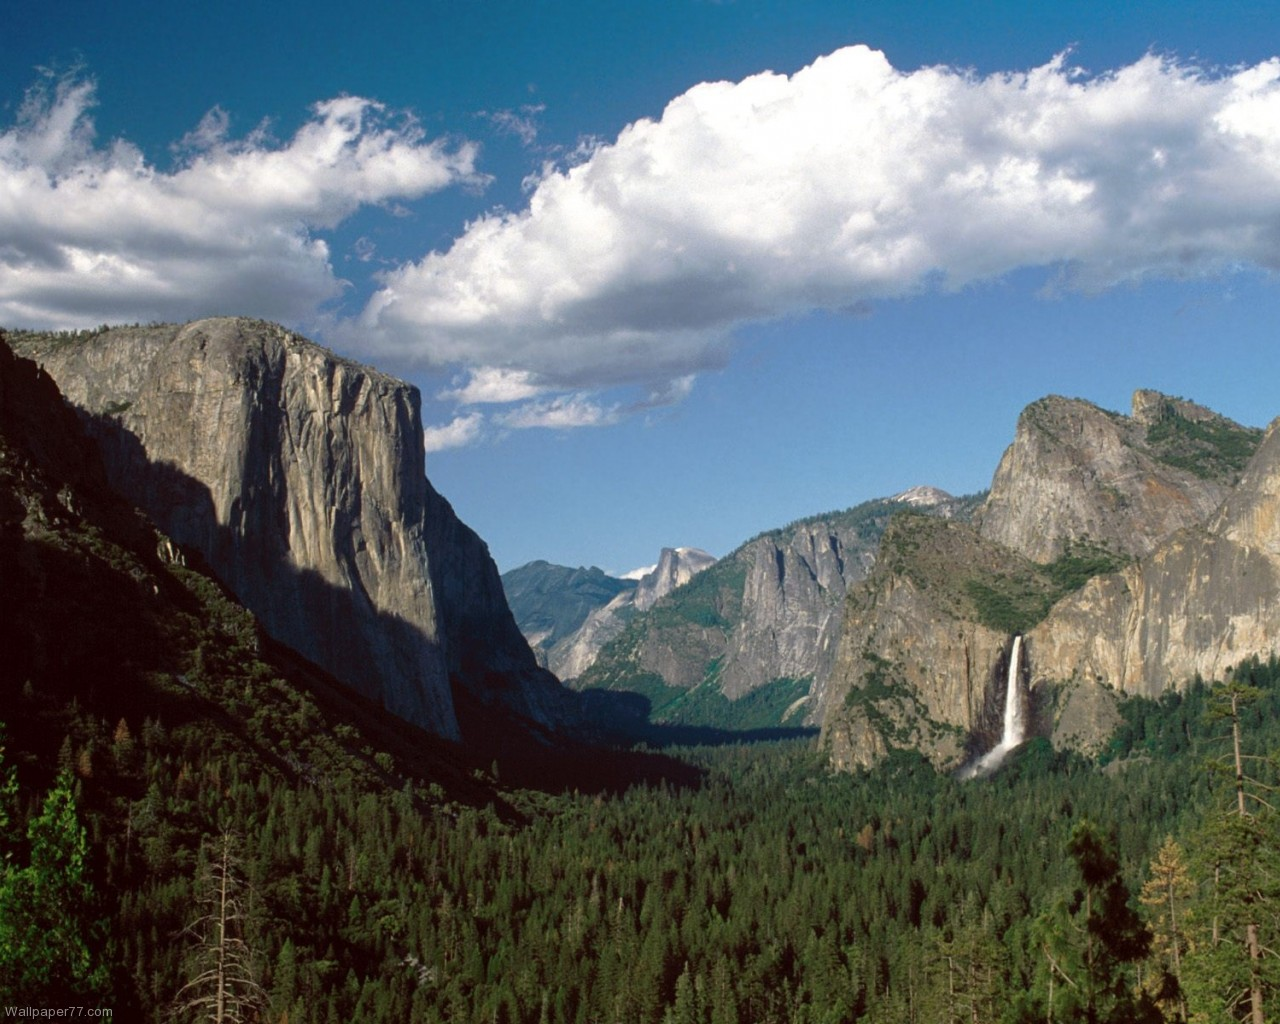 Yosemite Valley 1280x1024 pixels Wallpapers tagged Landscape 1280x1024